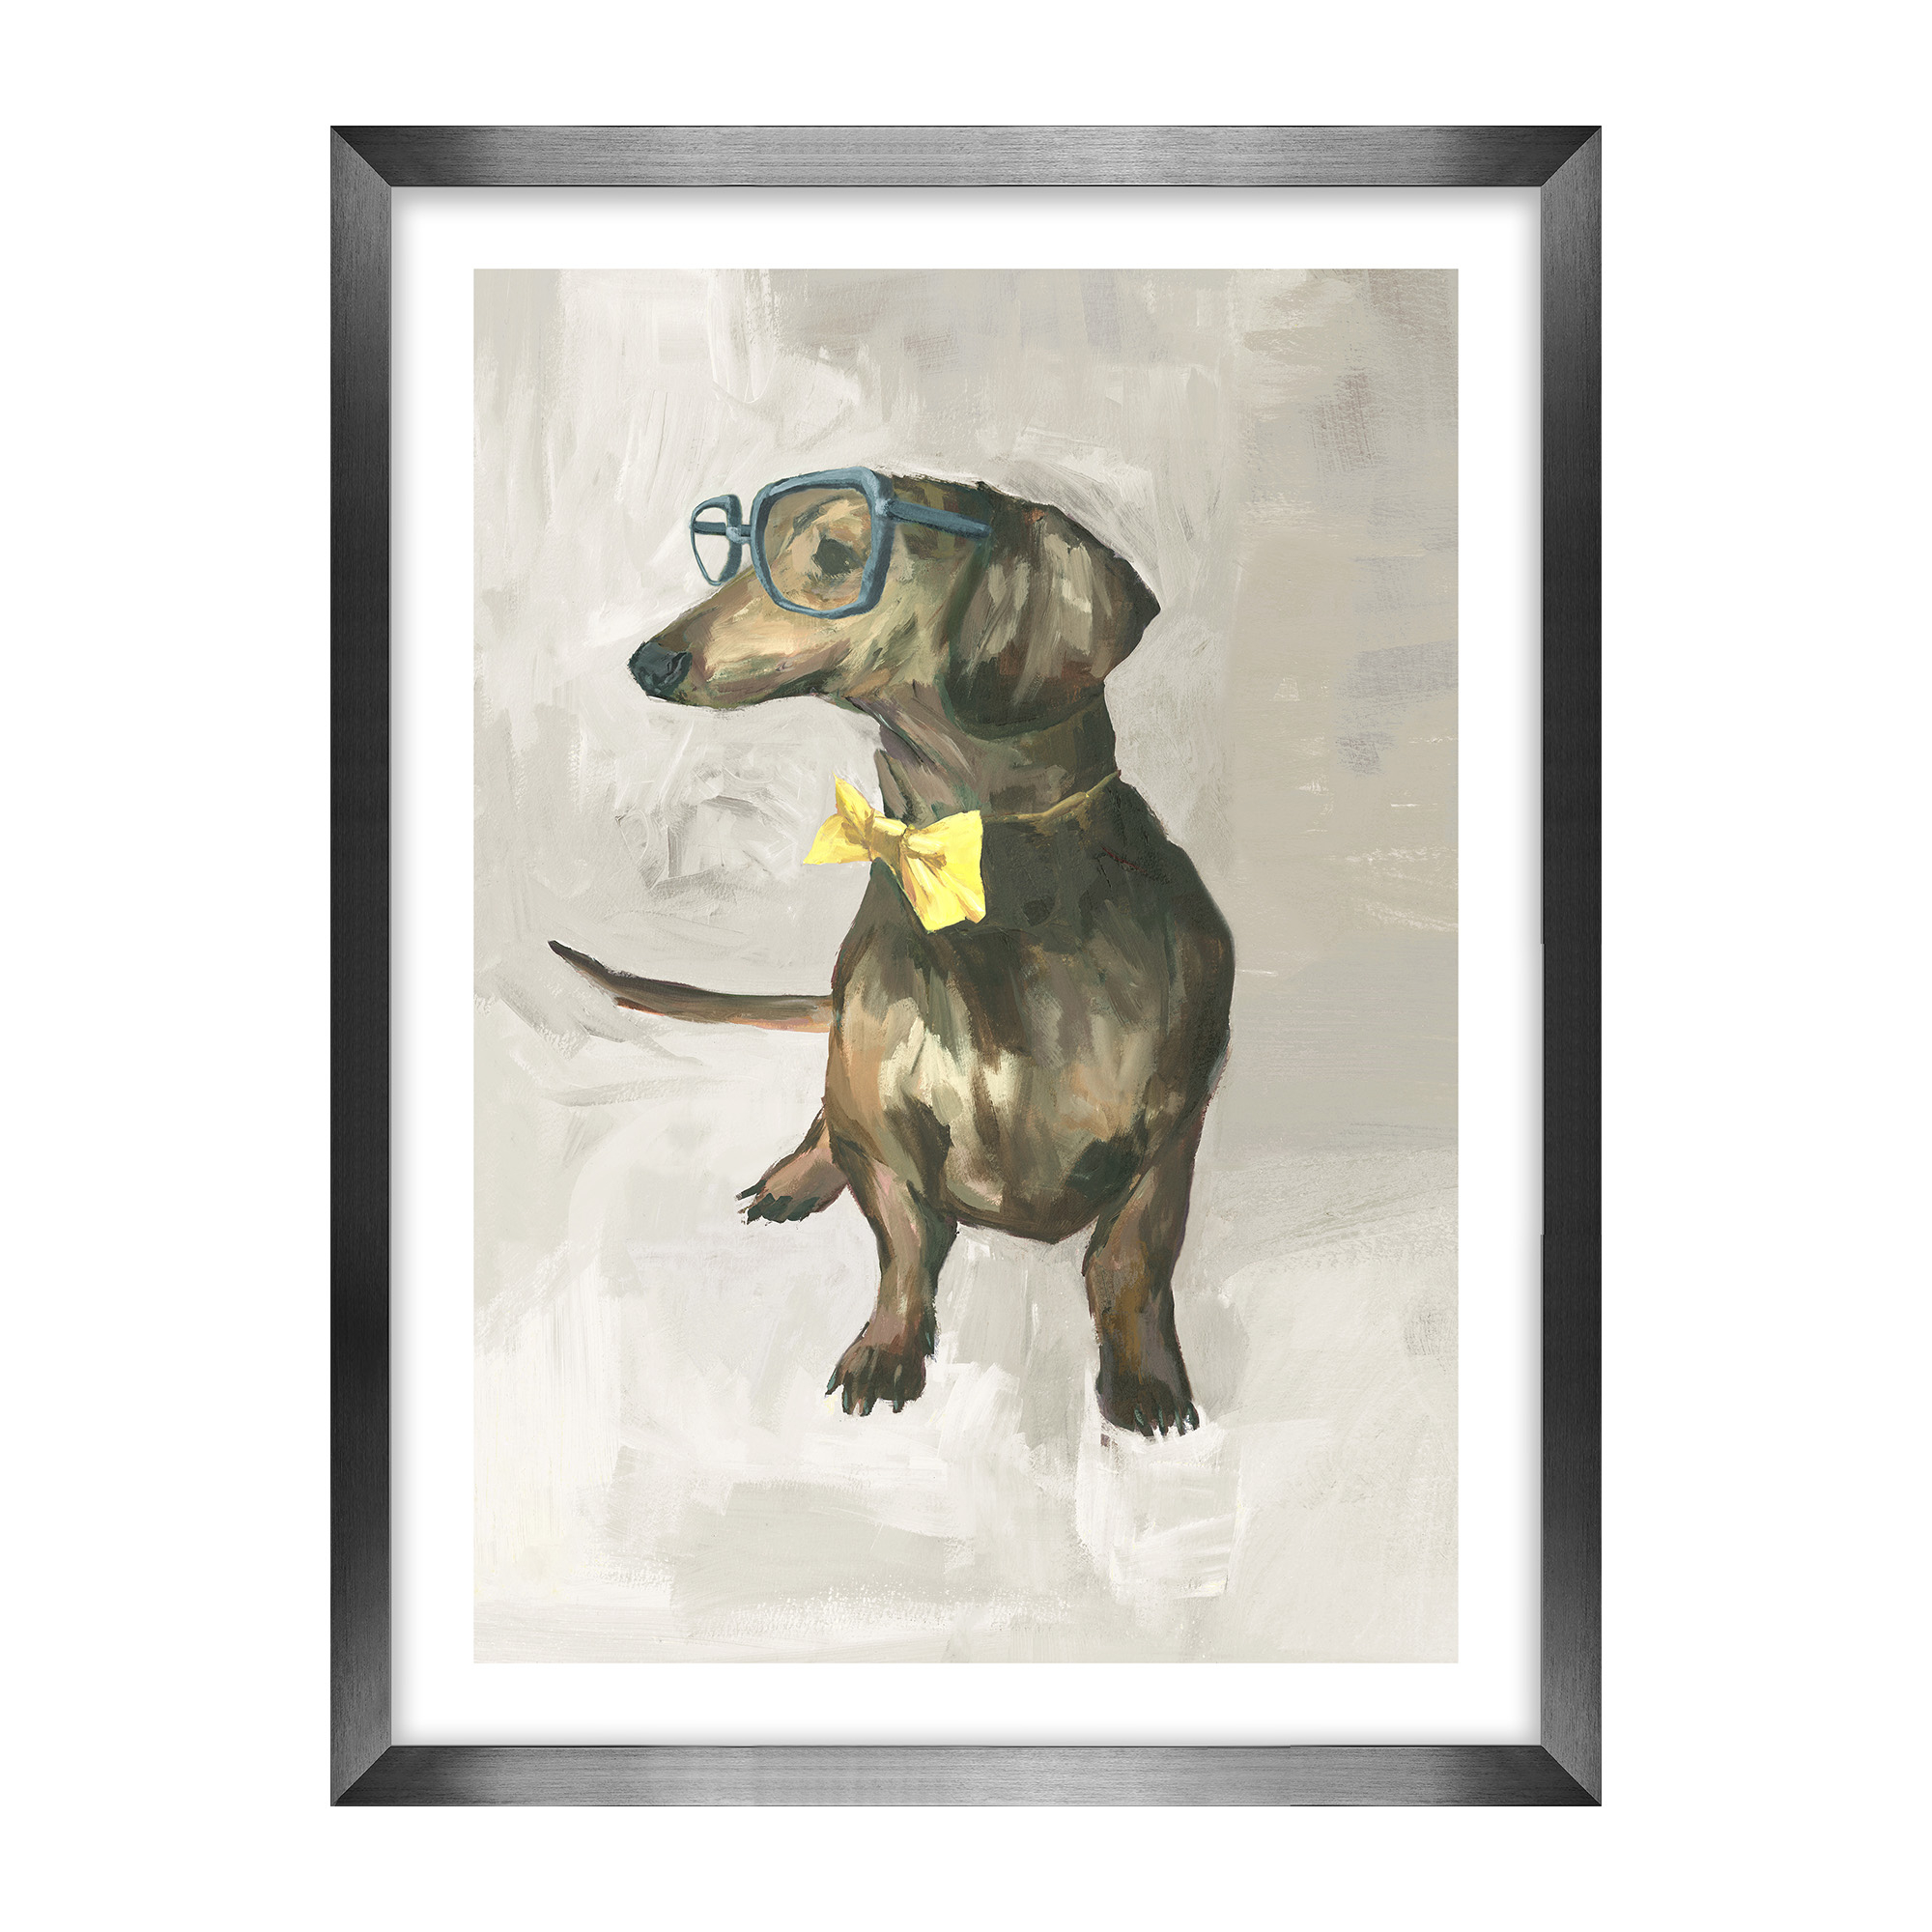 Dogs With Glasses Artwork, Dachshund